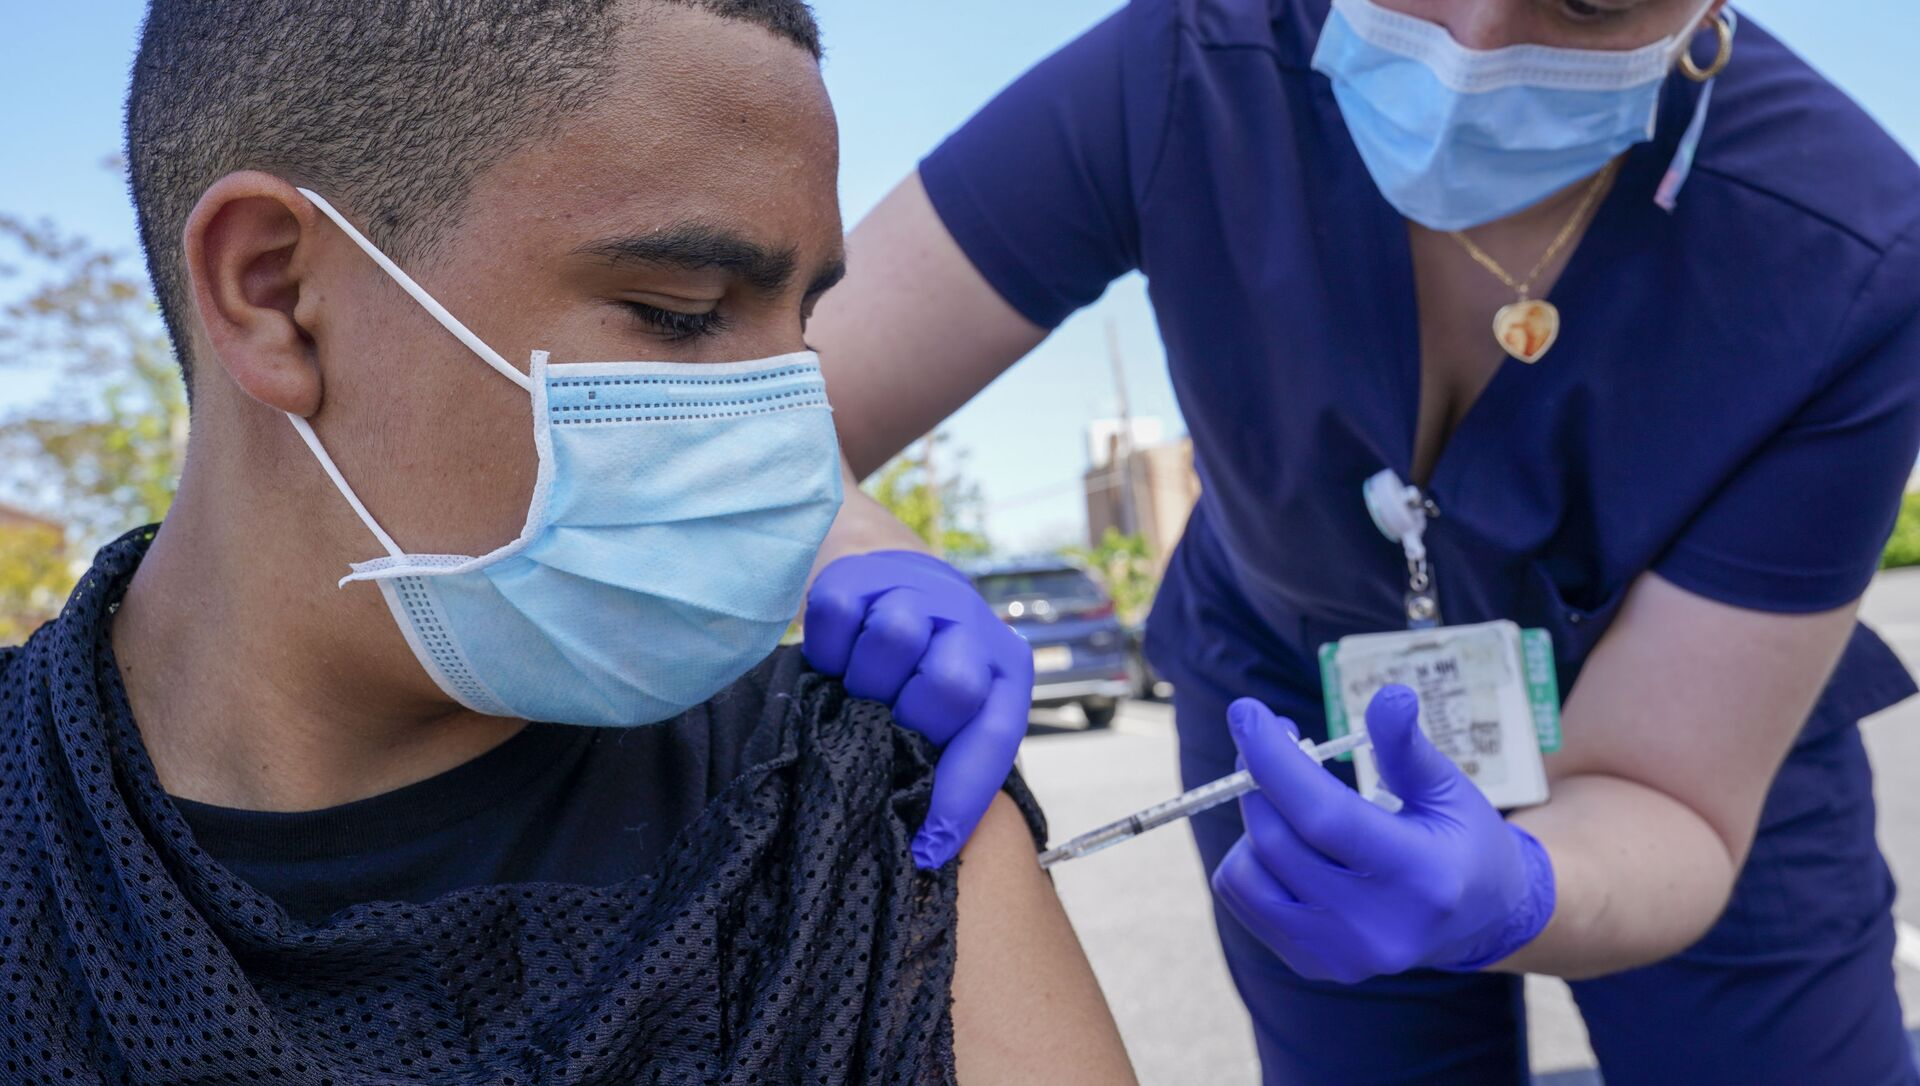 Justin Bishop, 13, watches as Registered Nurse Jennifer Reyes inoculates him with the first dose of the Pfizer COVID-19 vaccine at the Mount Sinai South Nassau Vaxmobile parked at the De La Salle School, Friday, 14 May 2021, in Freeport, NY. - Sputnik International, 1920, 23.07.2021